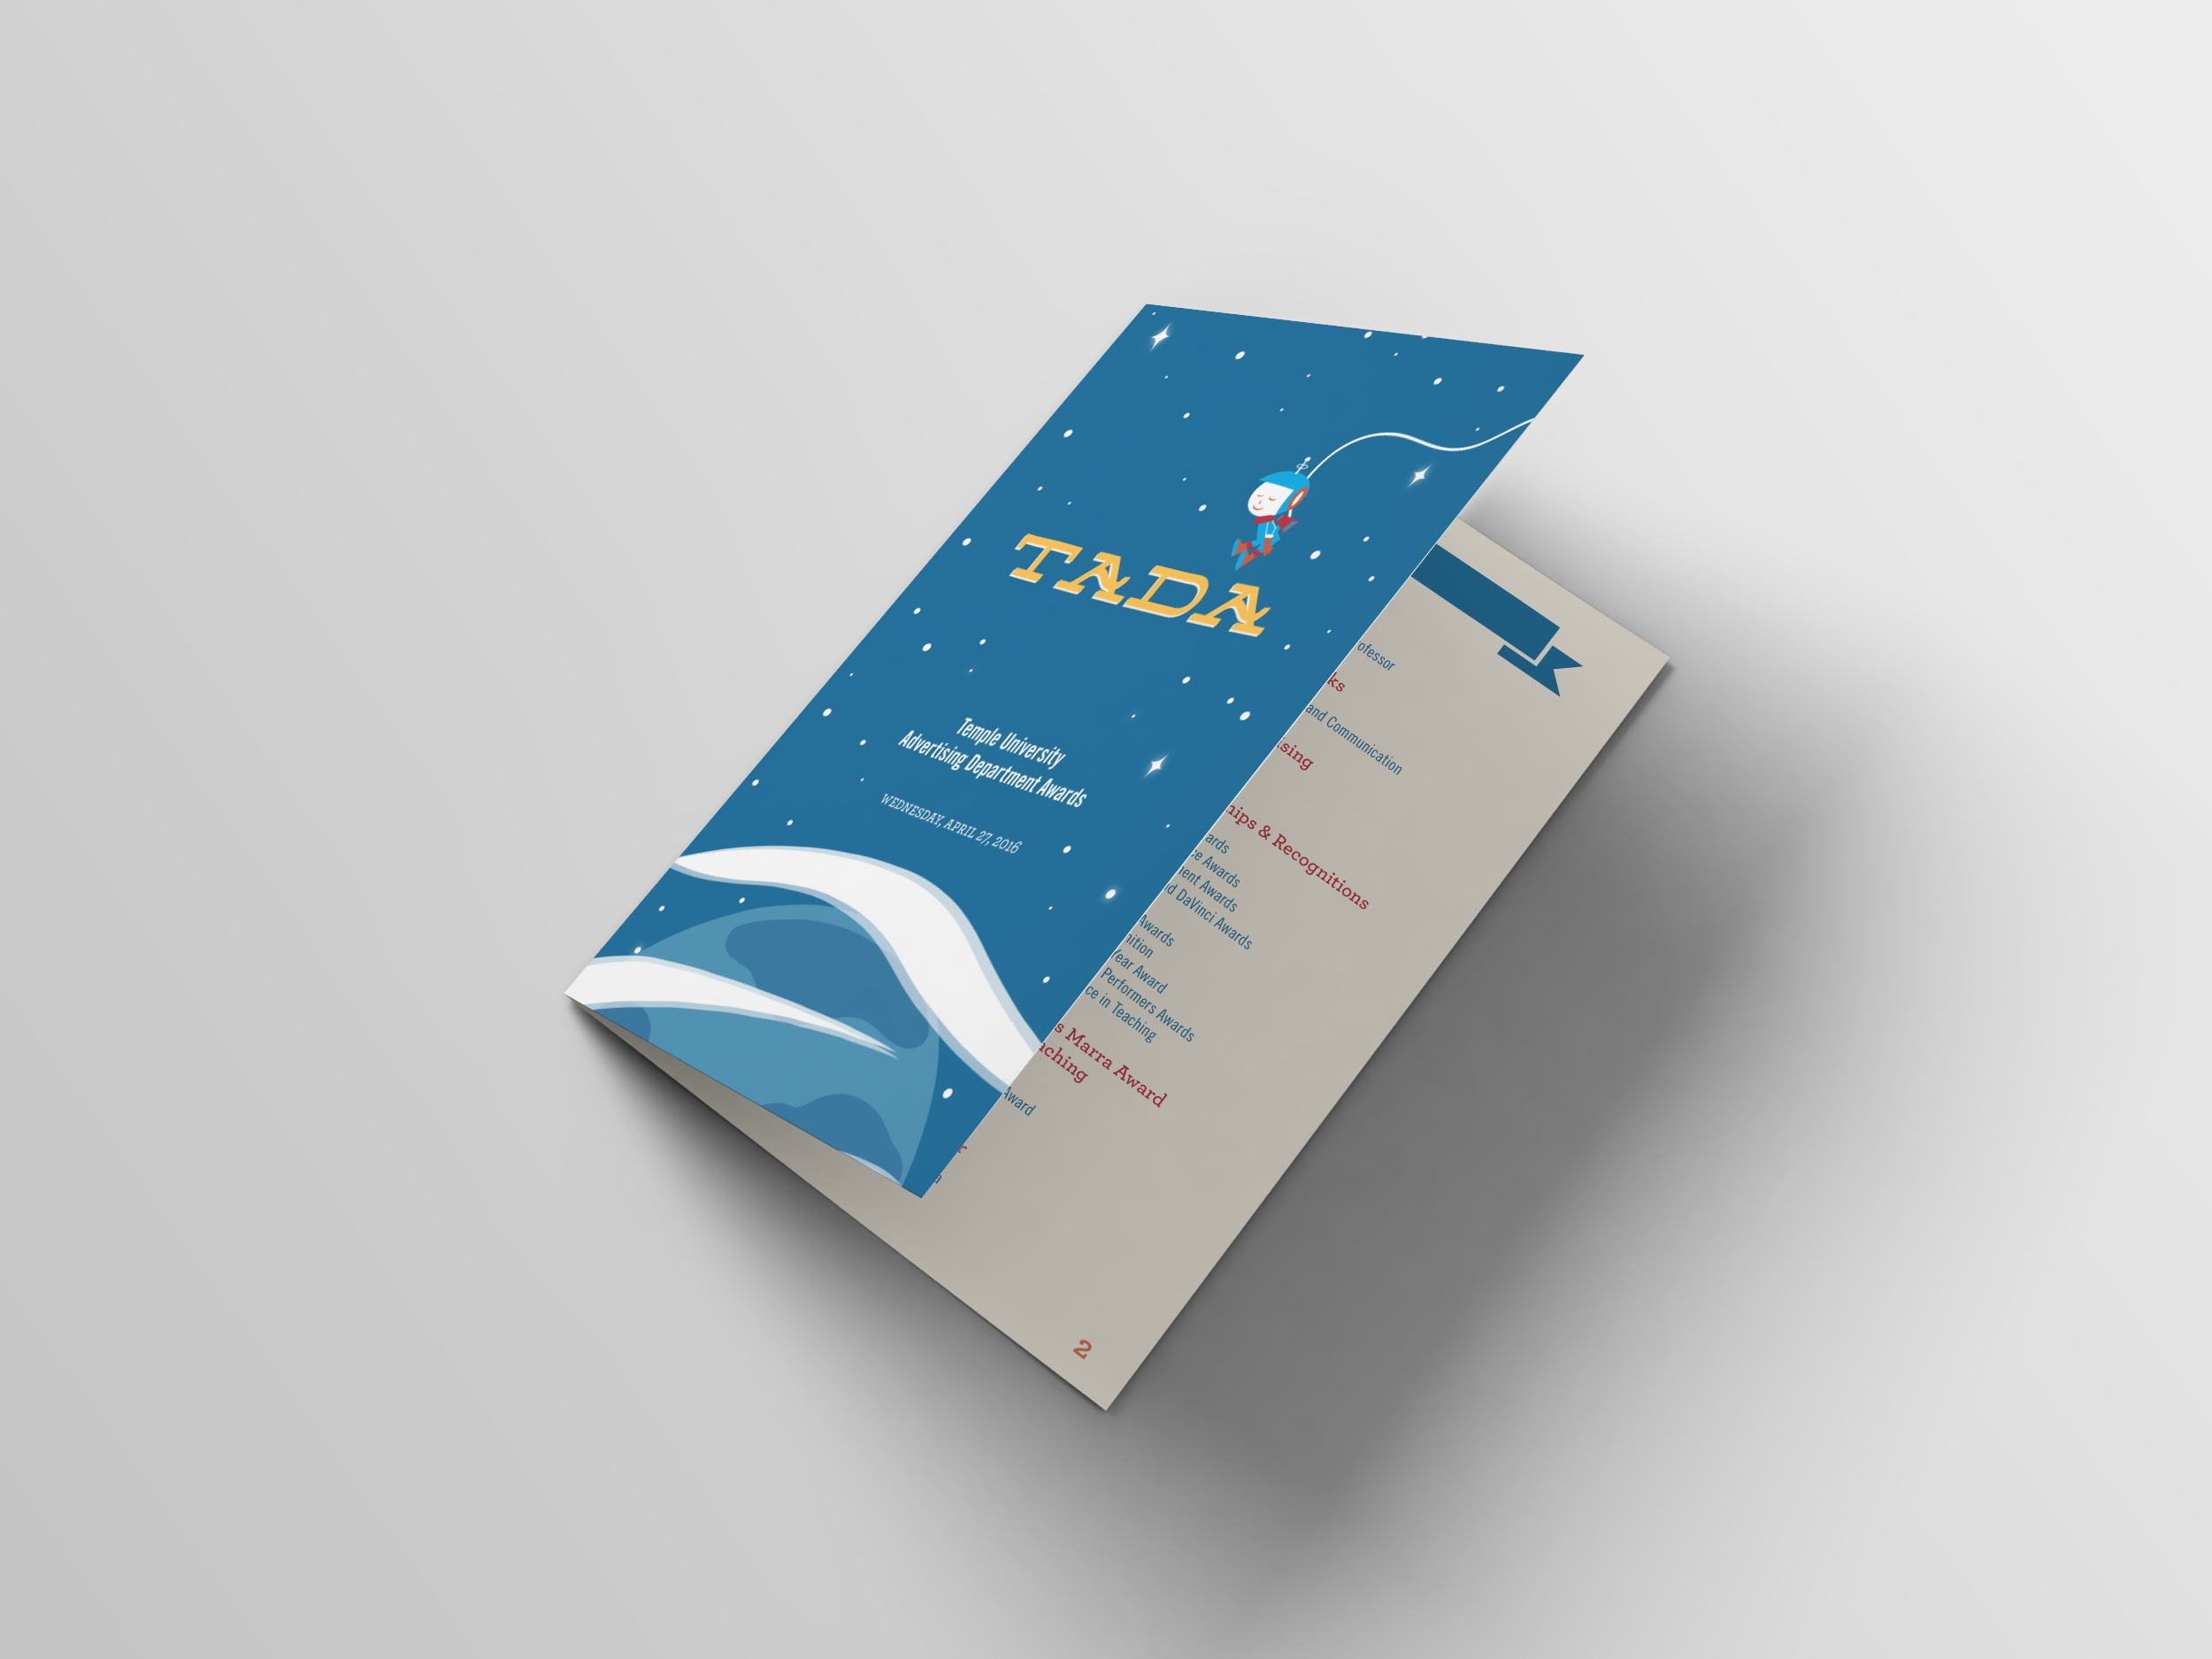 TADA_Booklet_CoverOpen.png